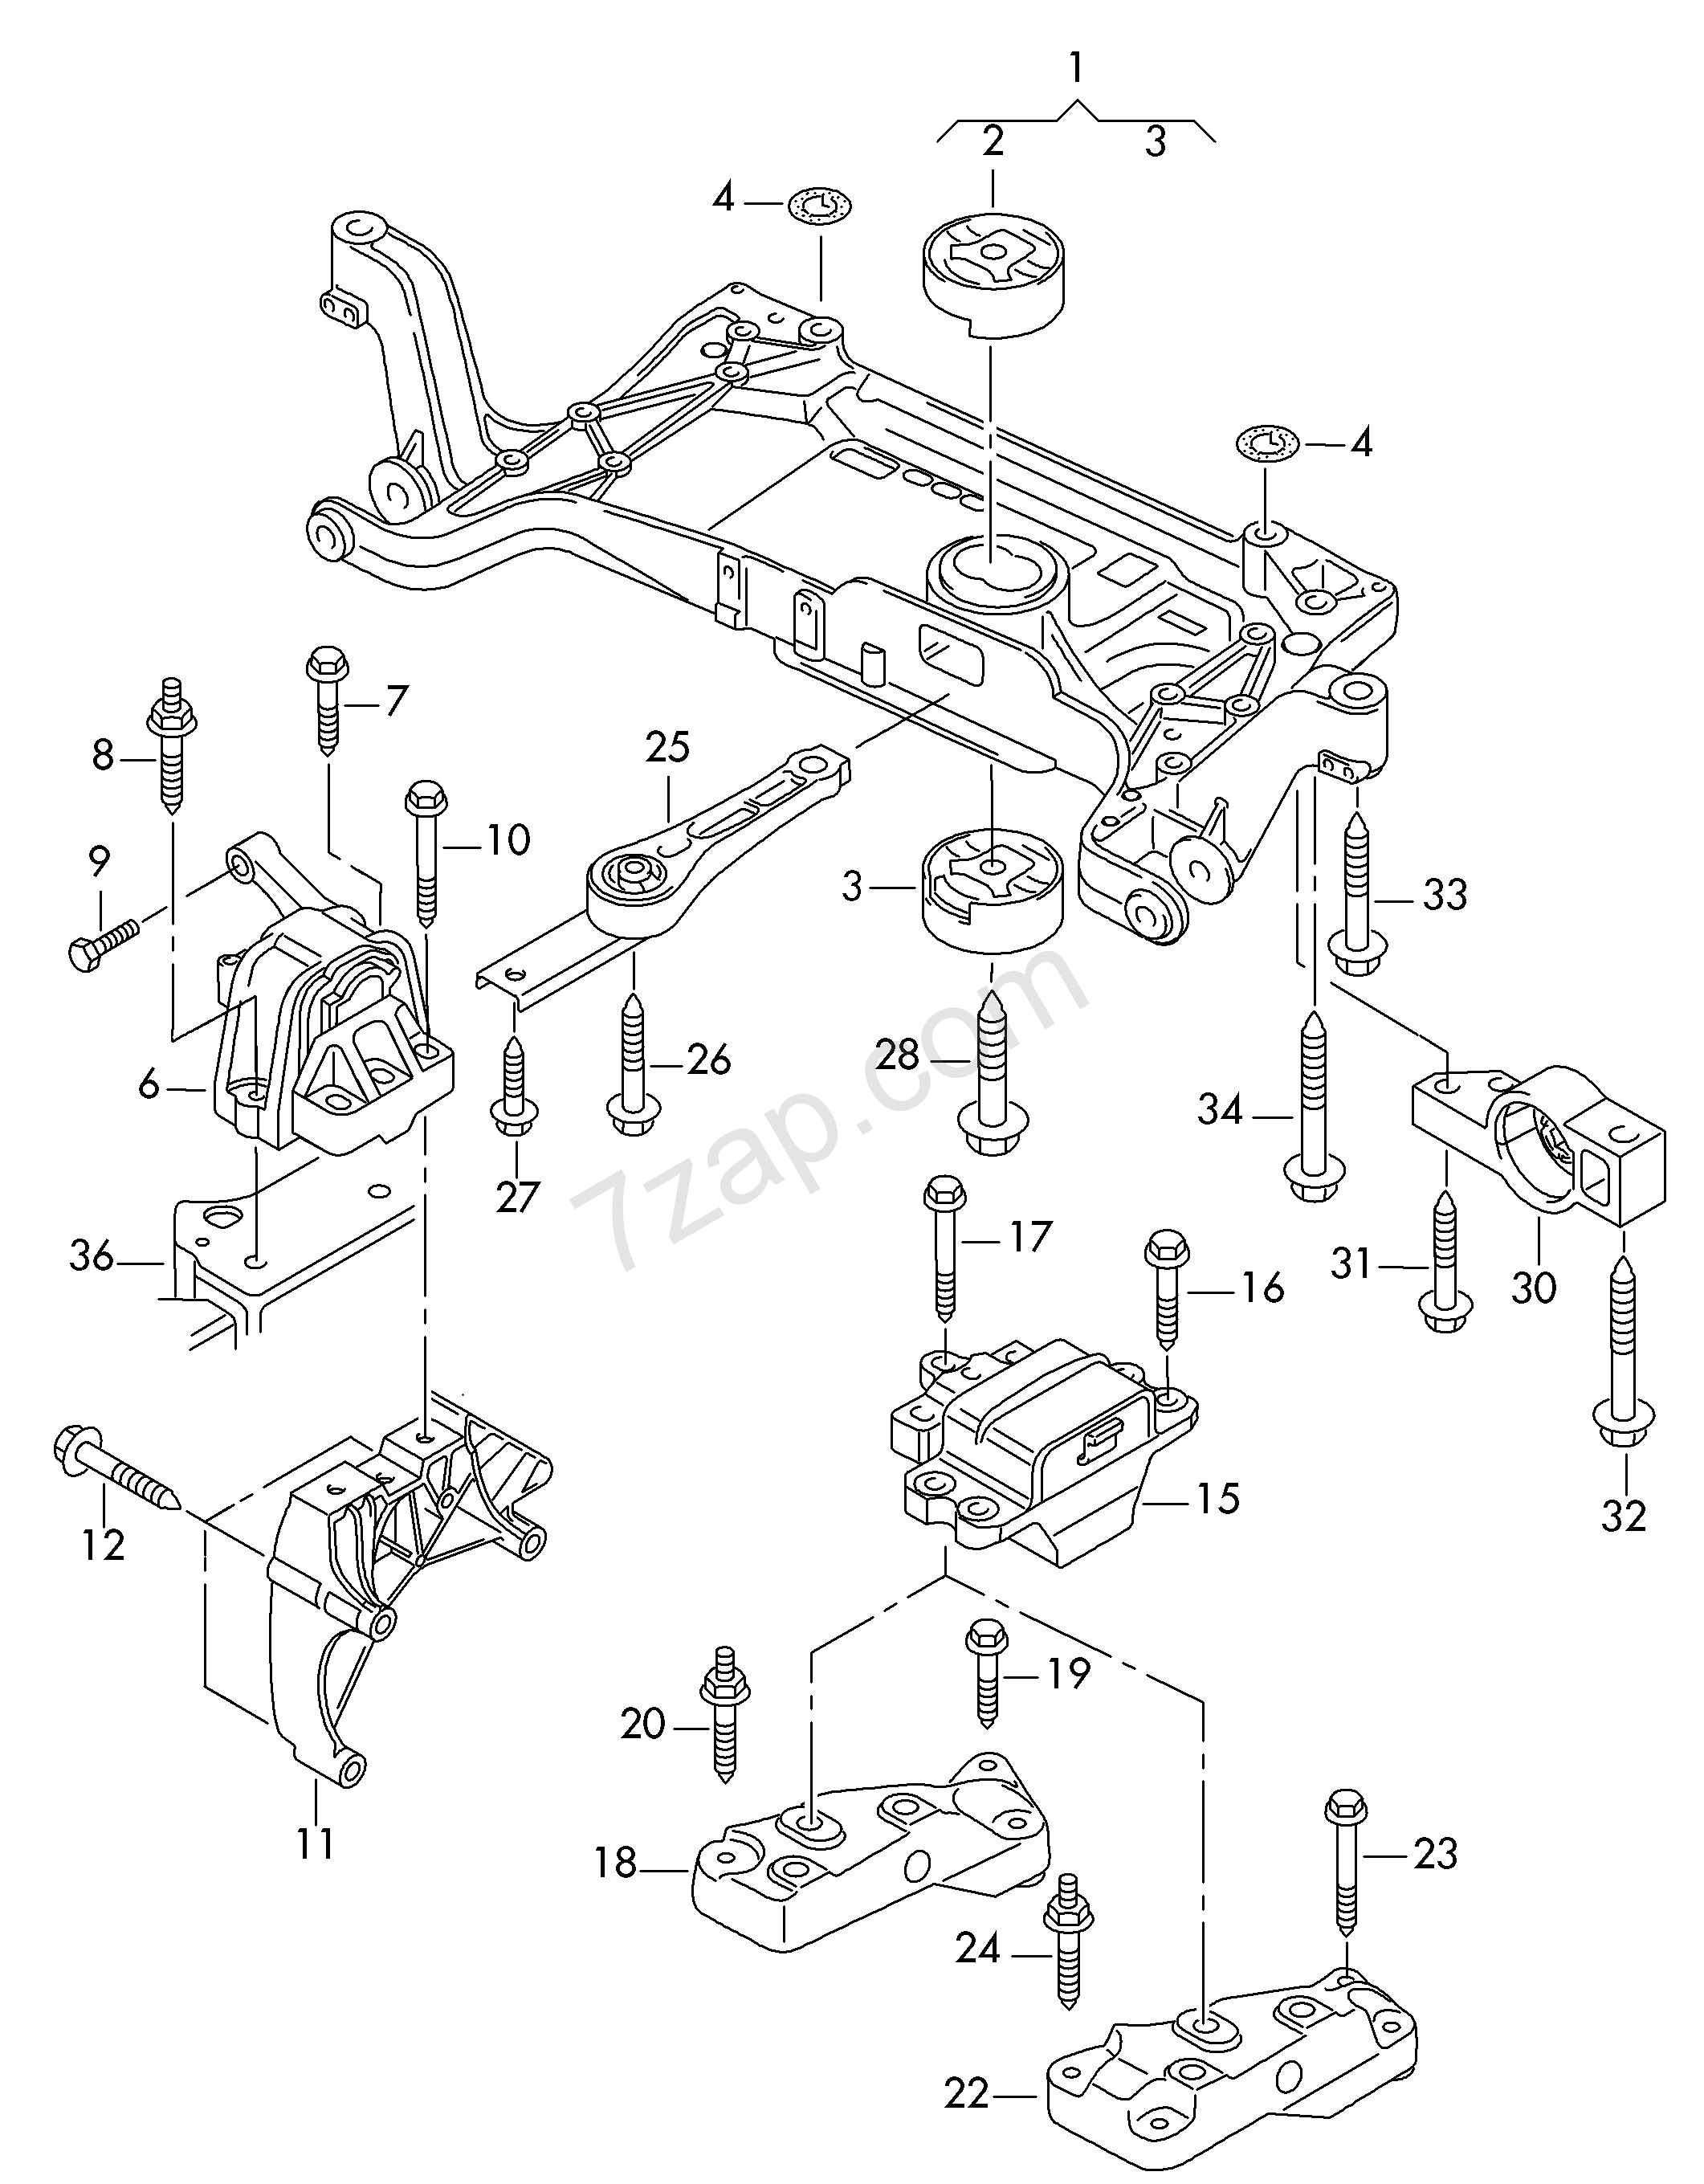 mounting parts for engine and transmission Sharan/syncro